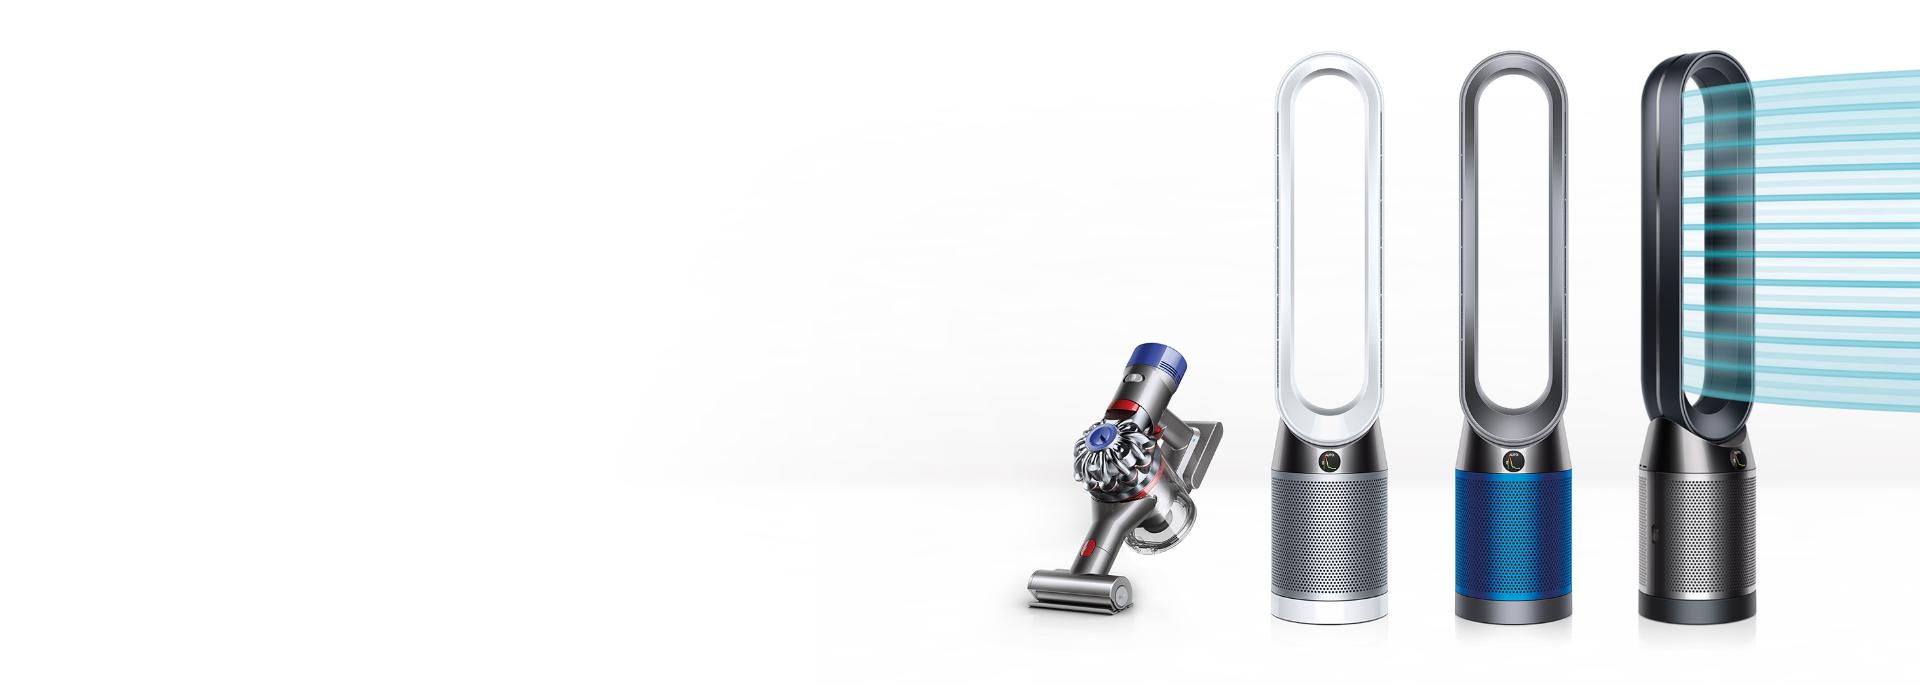 Dyson air purifiers with Dyson V7 Trigger vacuum